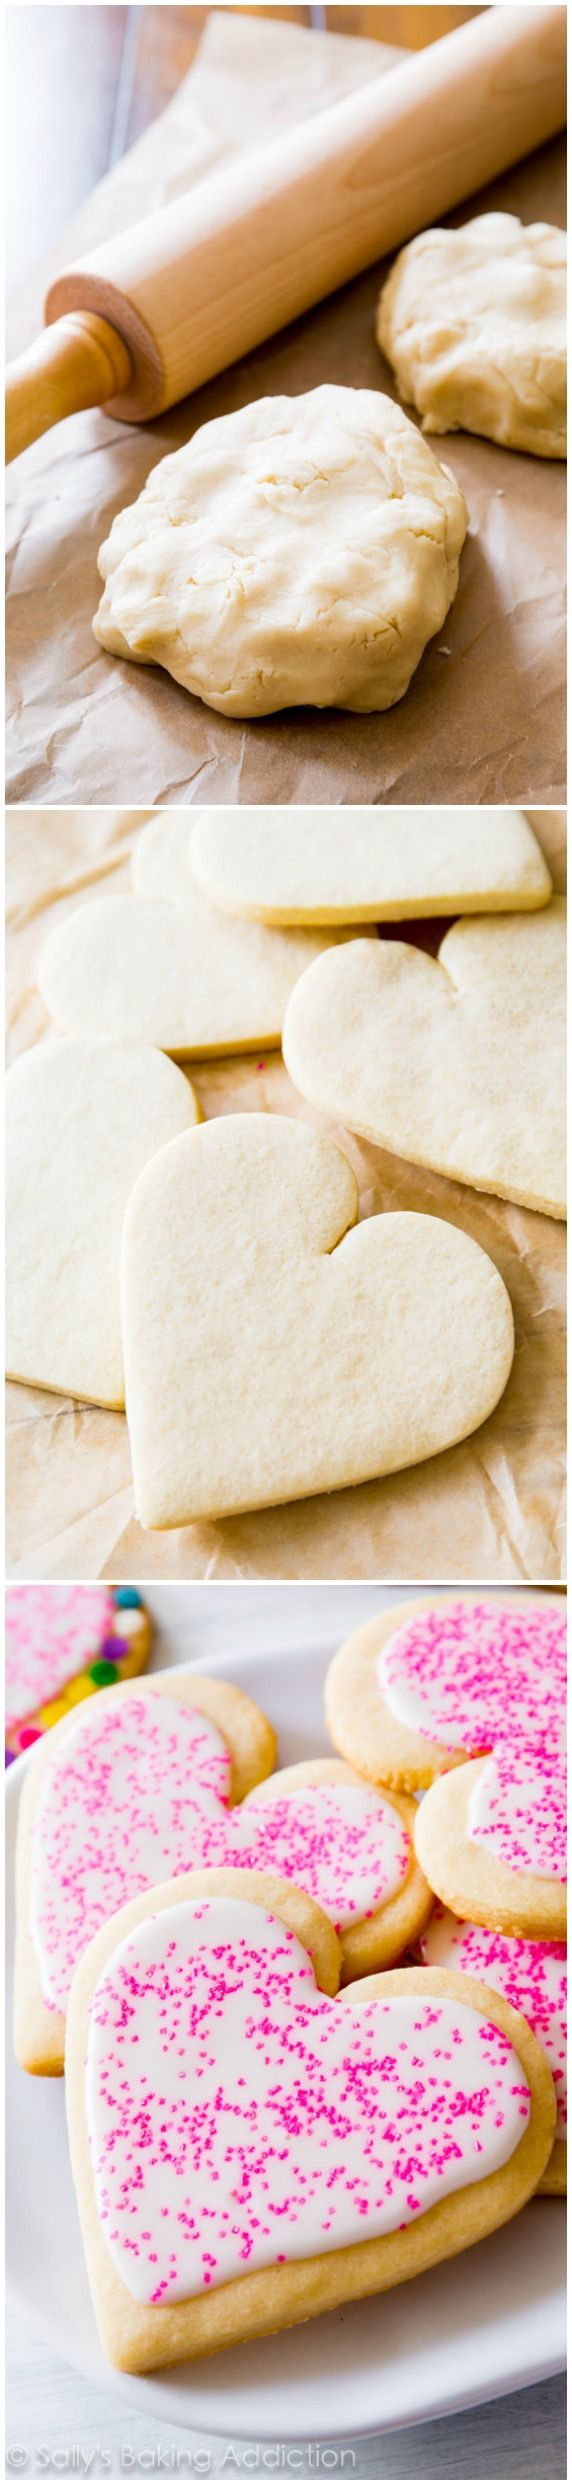 The BEST Cut-Out Sugar Cookies. Soft centers, slightly crisp edges ...